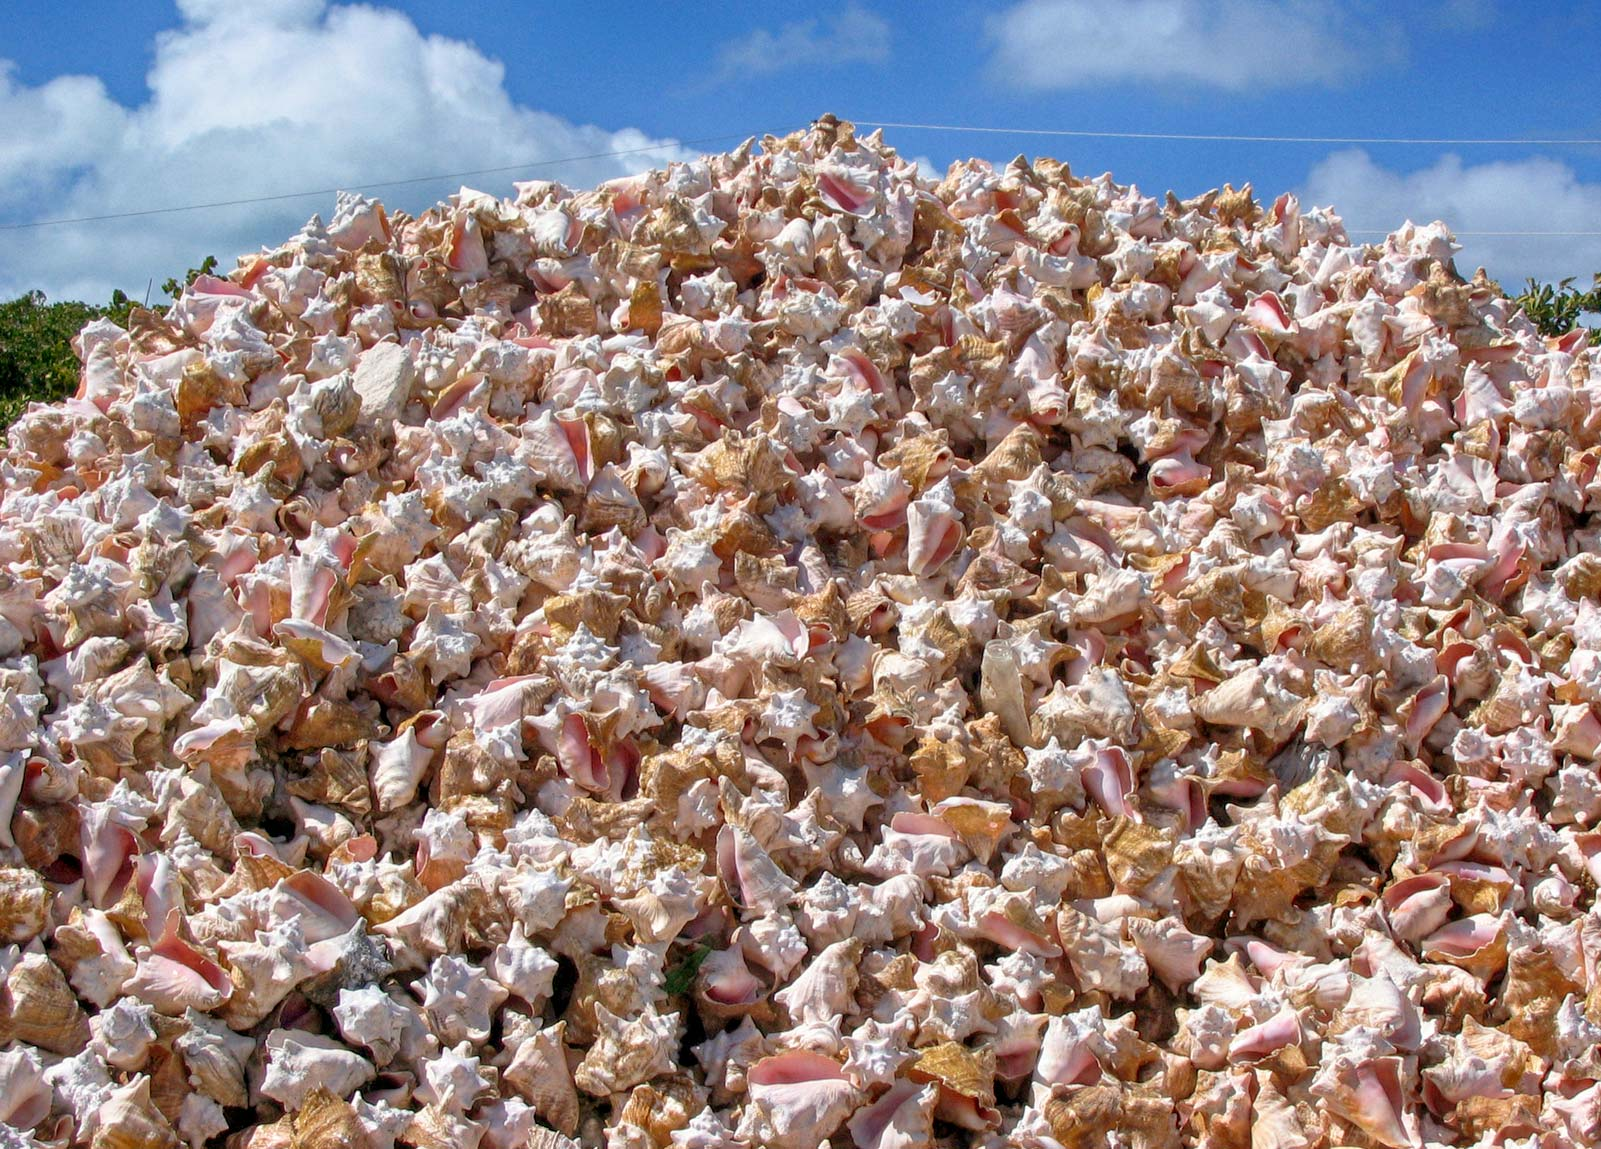 Caicos Conch Farm